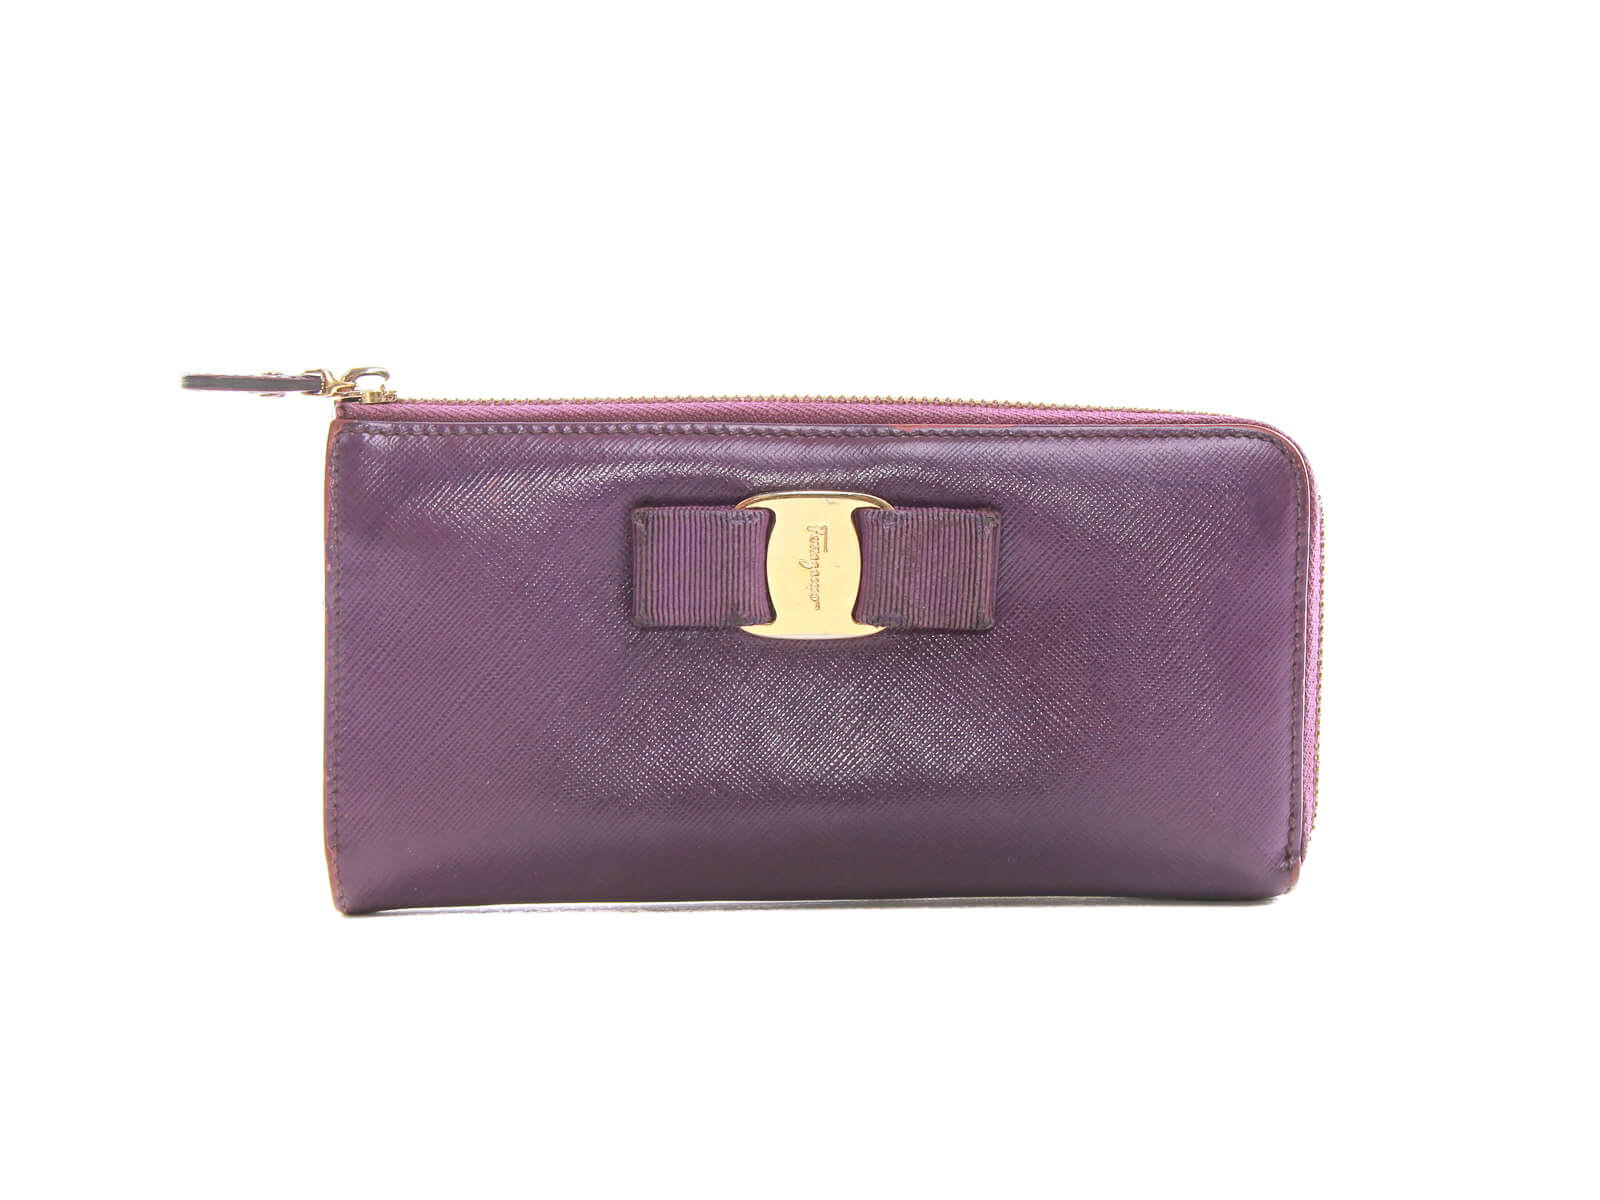 Authentic Salvatore Ferragamo purple Zip-around long wallet